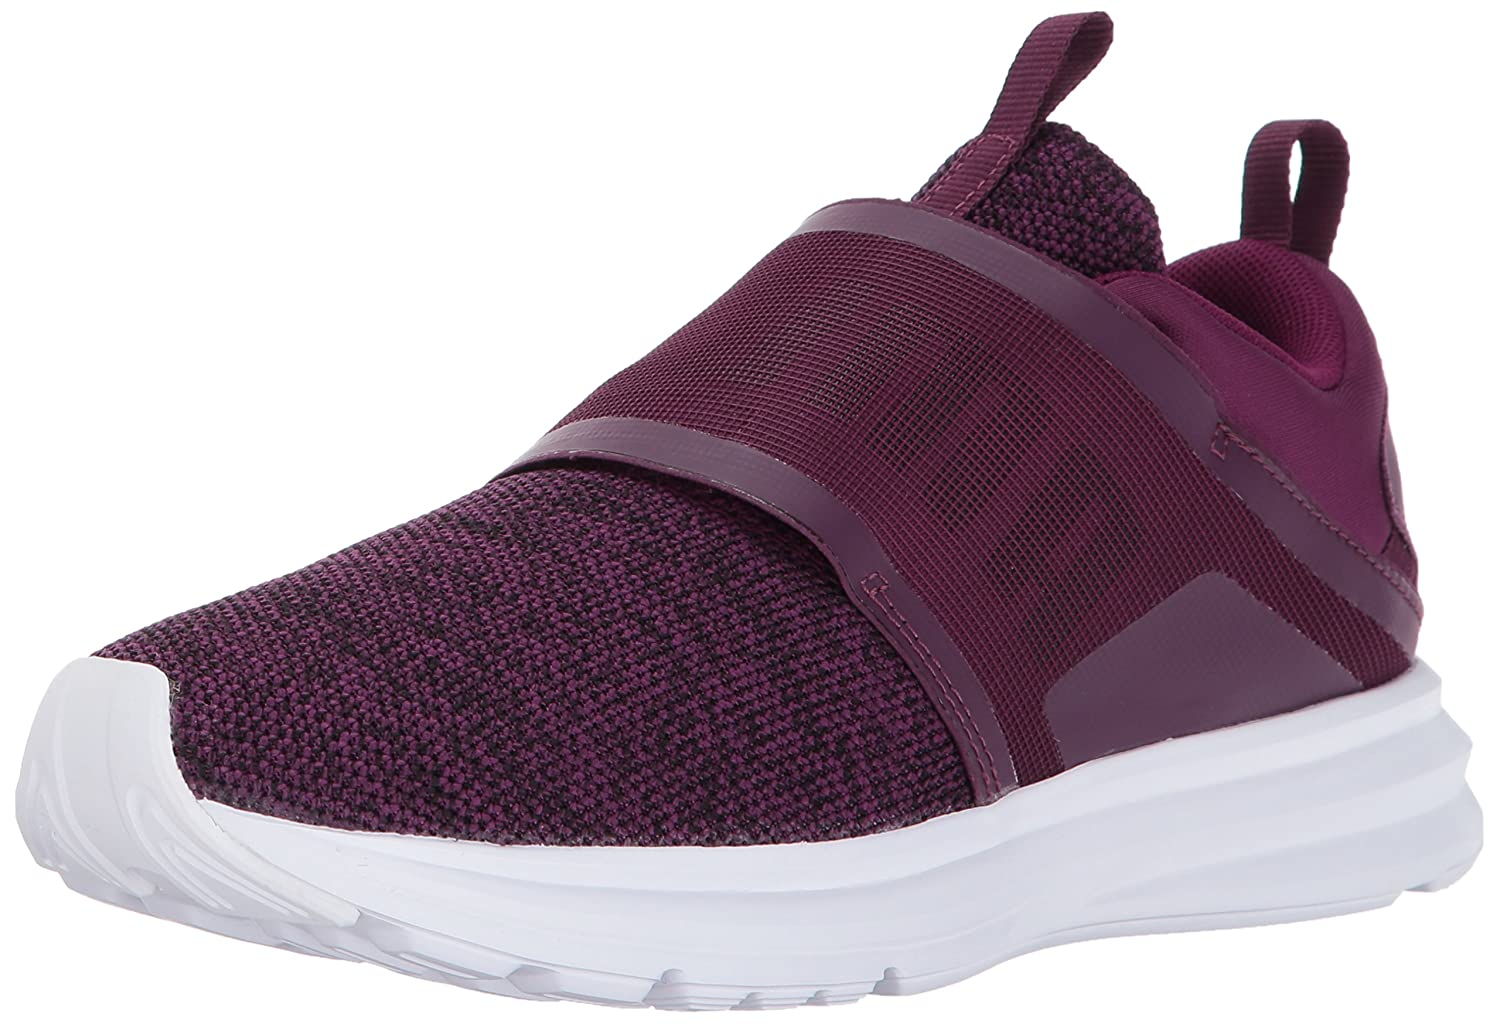 PUMA Women's Enzo Strap Knit Sneaker B01MSZZOKB 10.5 B(M) US|Dark Purple-puma Black